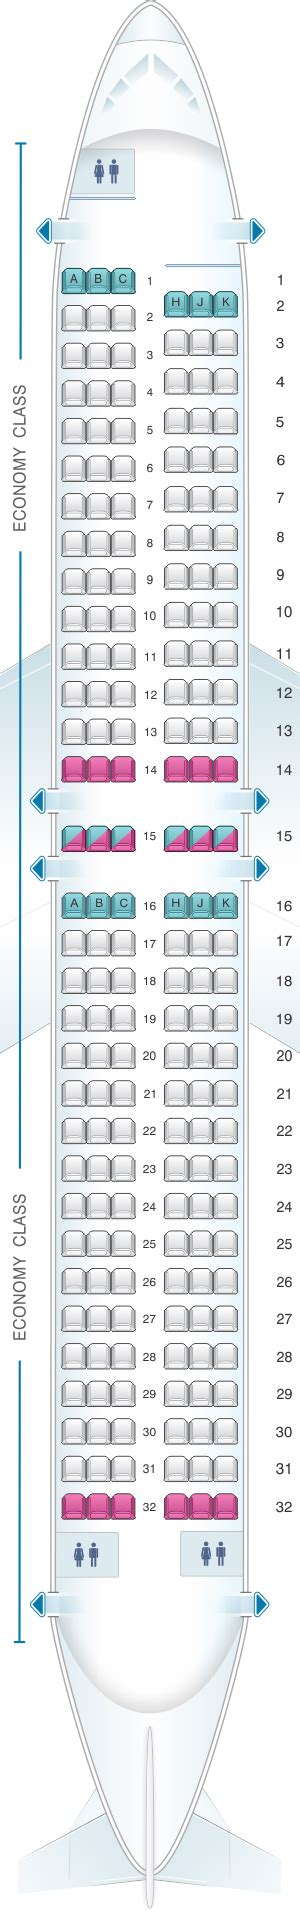 boeing 737 plan sieges seat map air transat boeing 737 800 us and south seatmaestro